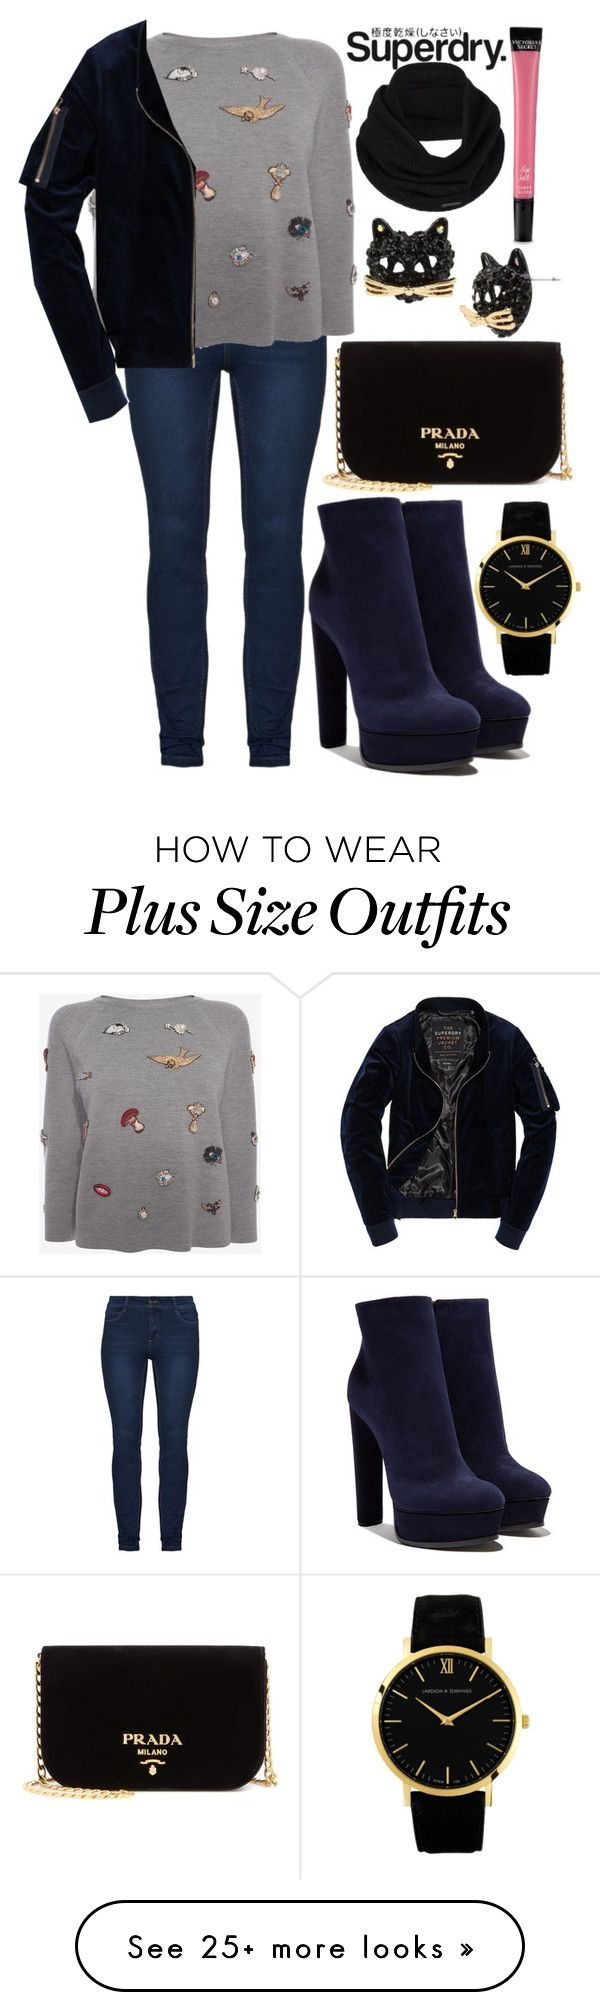 """The Cover Up – Jackets by Superdry: Contest Entry"" by deedee-pekarik on Polyvore featuring Alexander McQueen, Superdry, Casadei, Prada, Betsey Johnson, prAna, Victoria's Secret, jacket, outerwear and MySupredry"